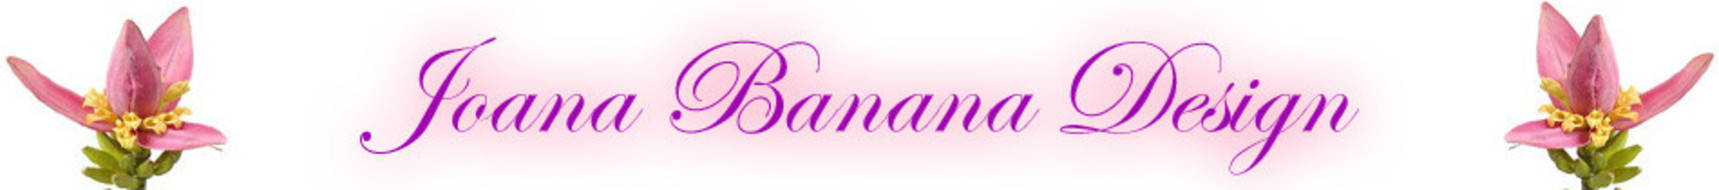 JOANA BANANA DESIGN